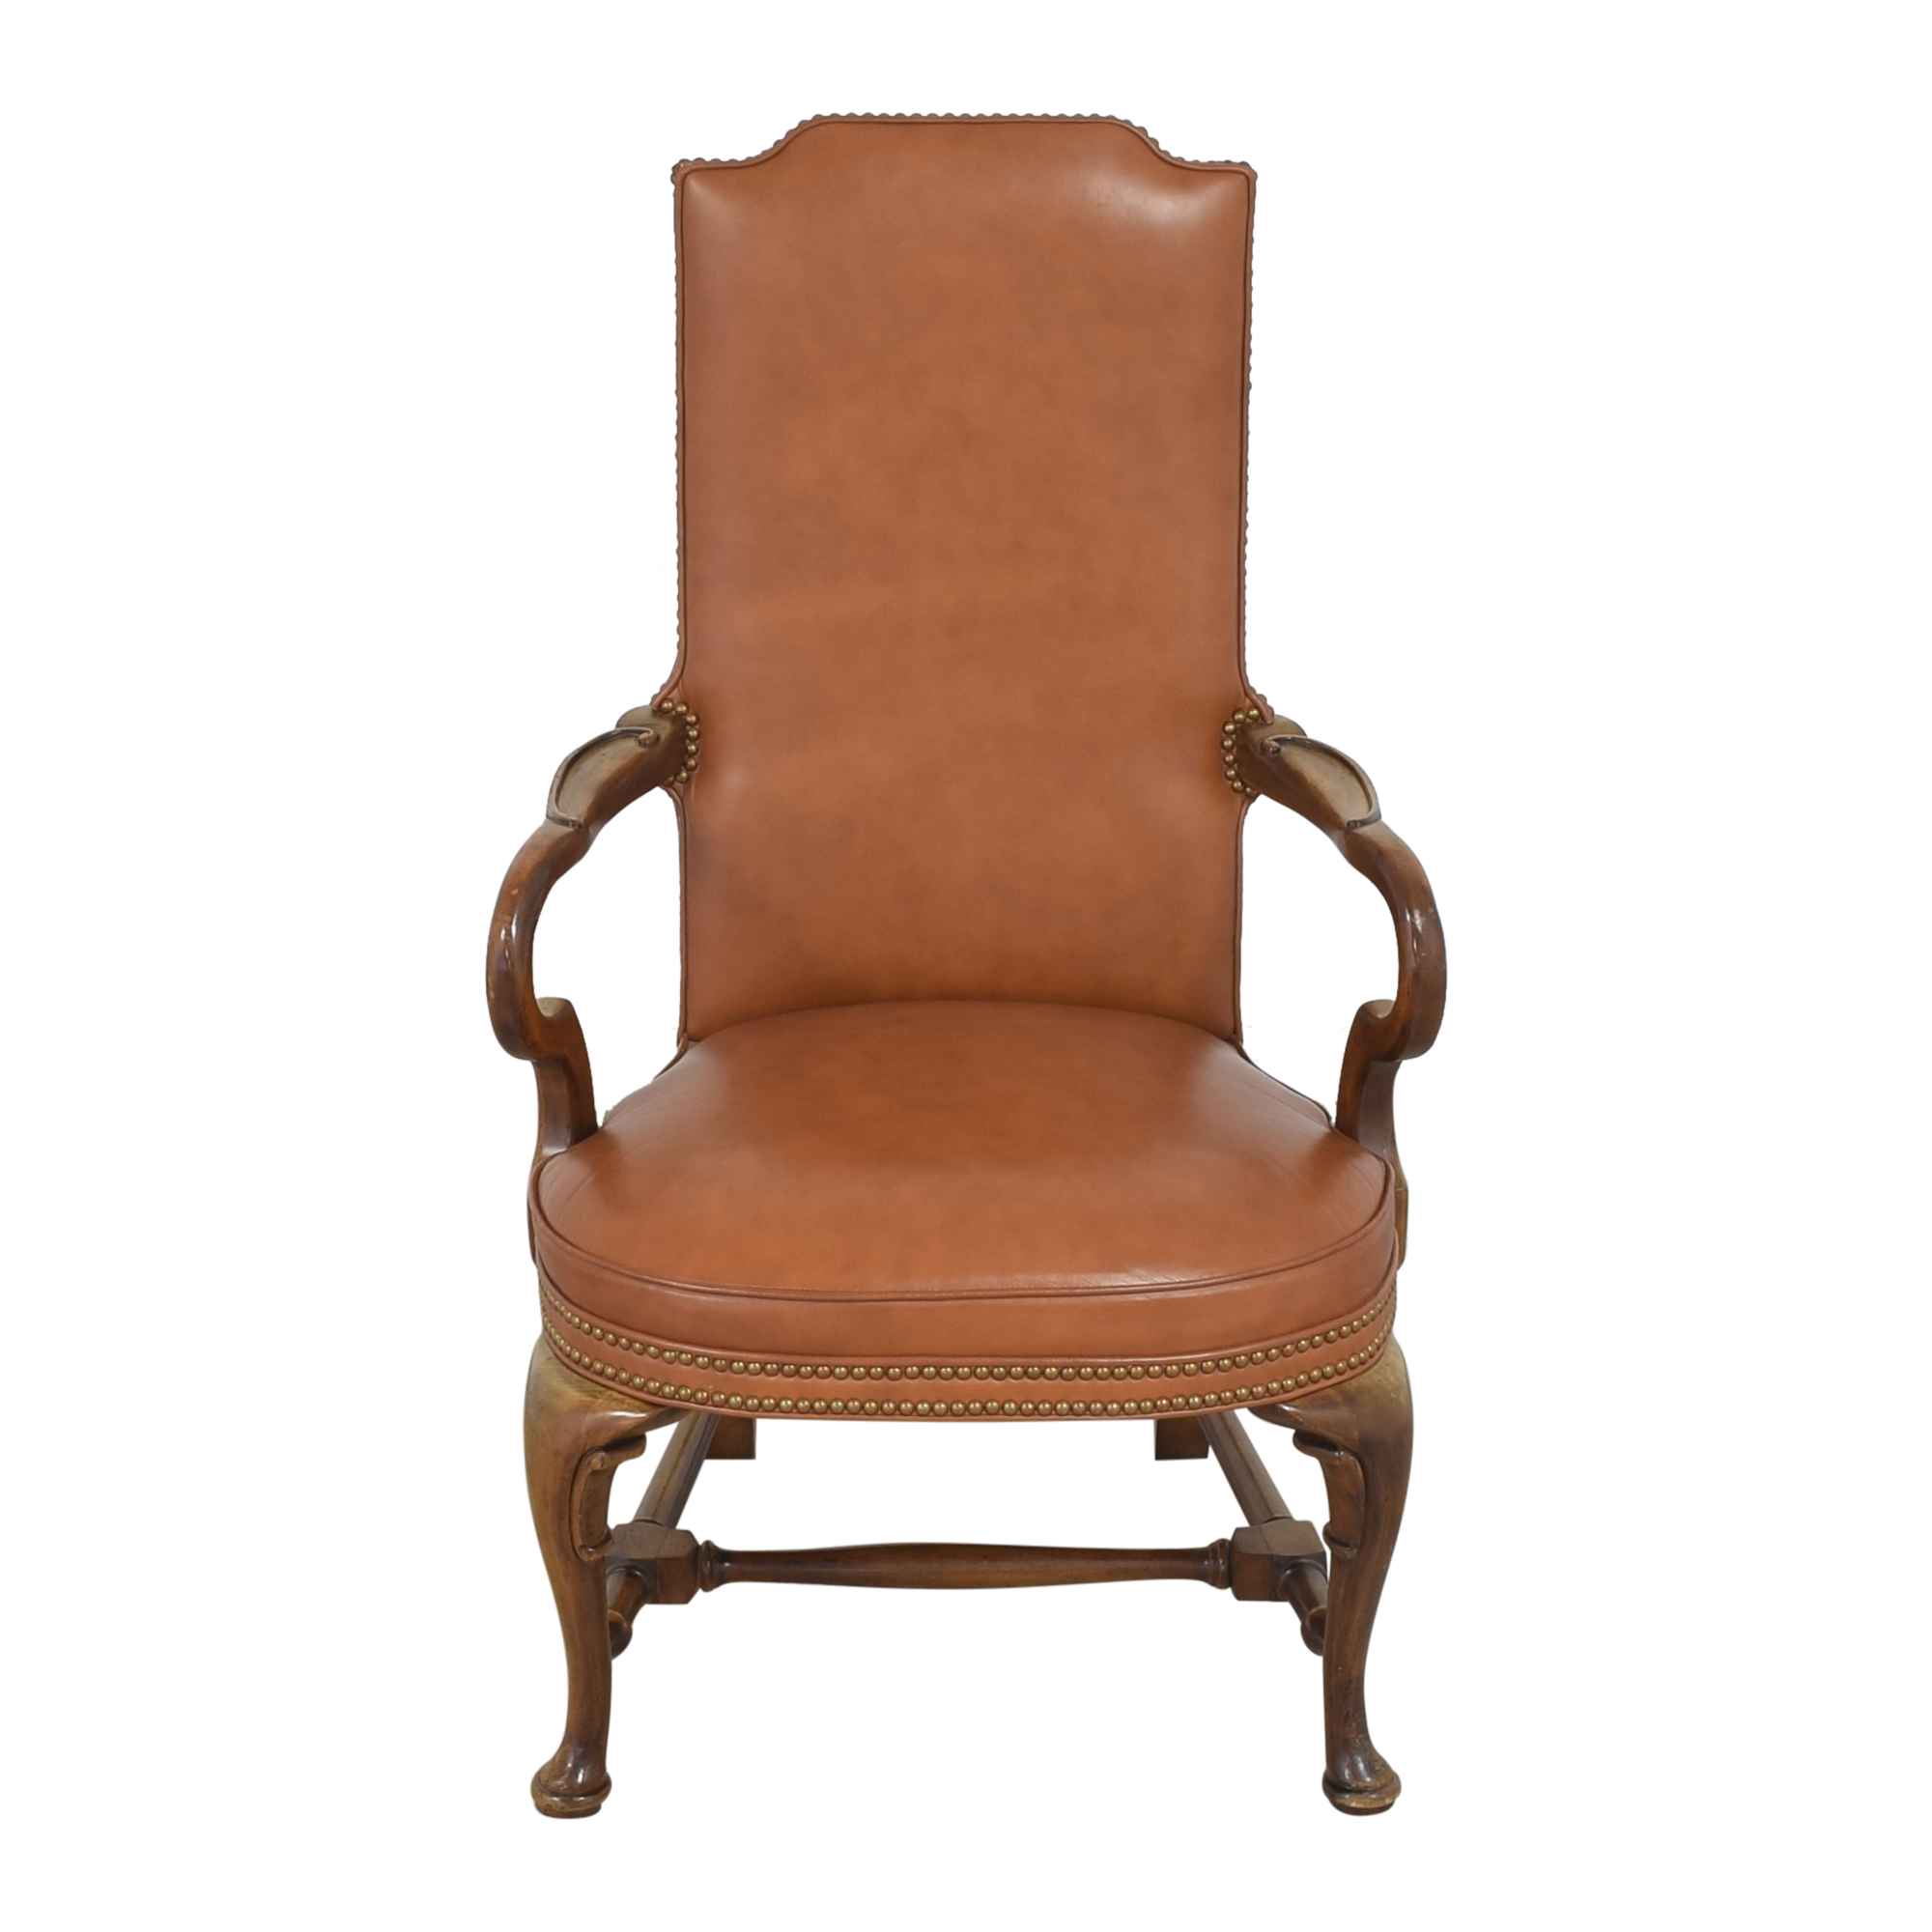 Century Chair Company Century Chair Company High Back Arm Chair brown